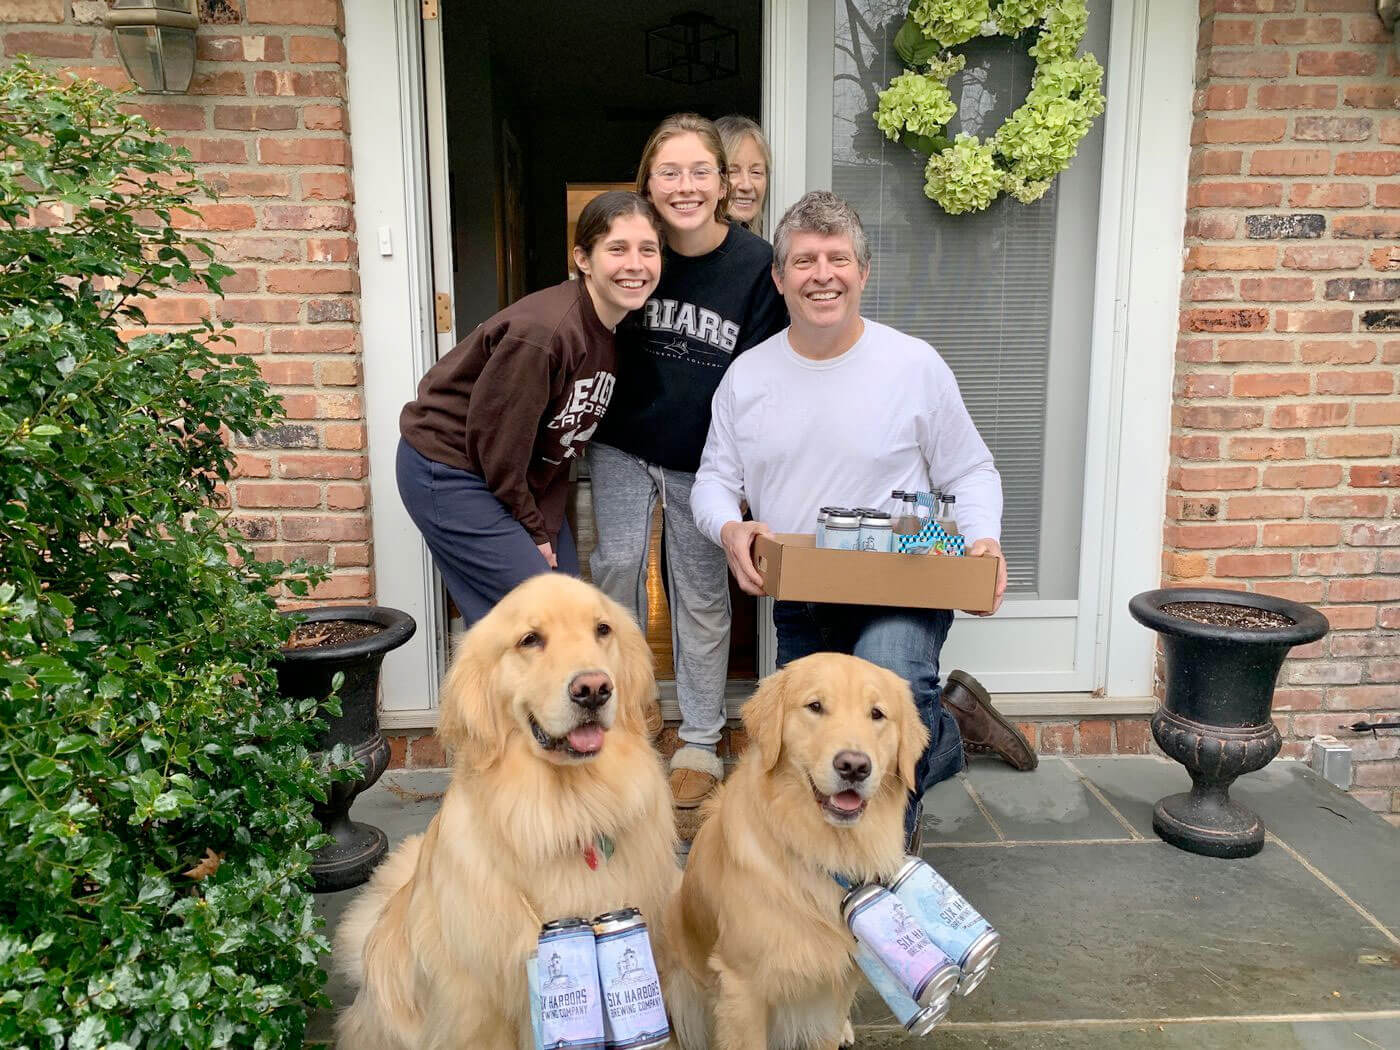 To maintain safe social distancing amid the coronavirus pandemic, the owners of Six Harbors Brewing Company began using their dogs to make beer deliveries.